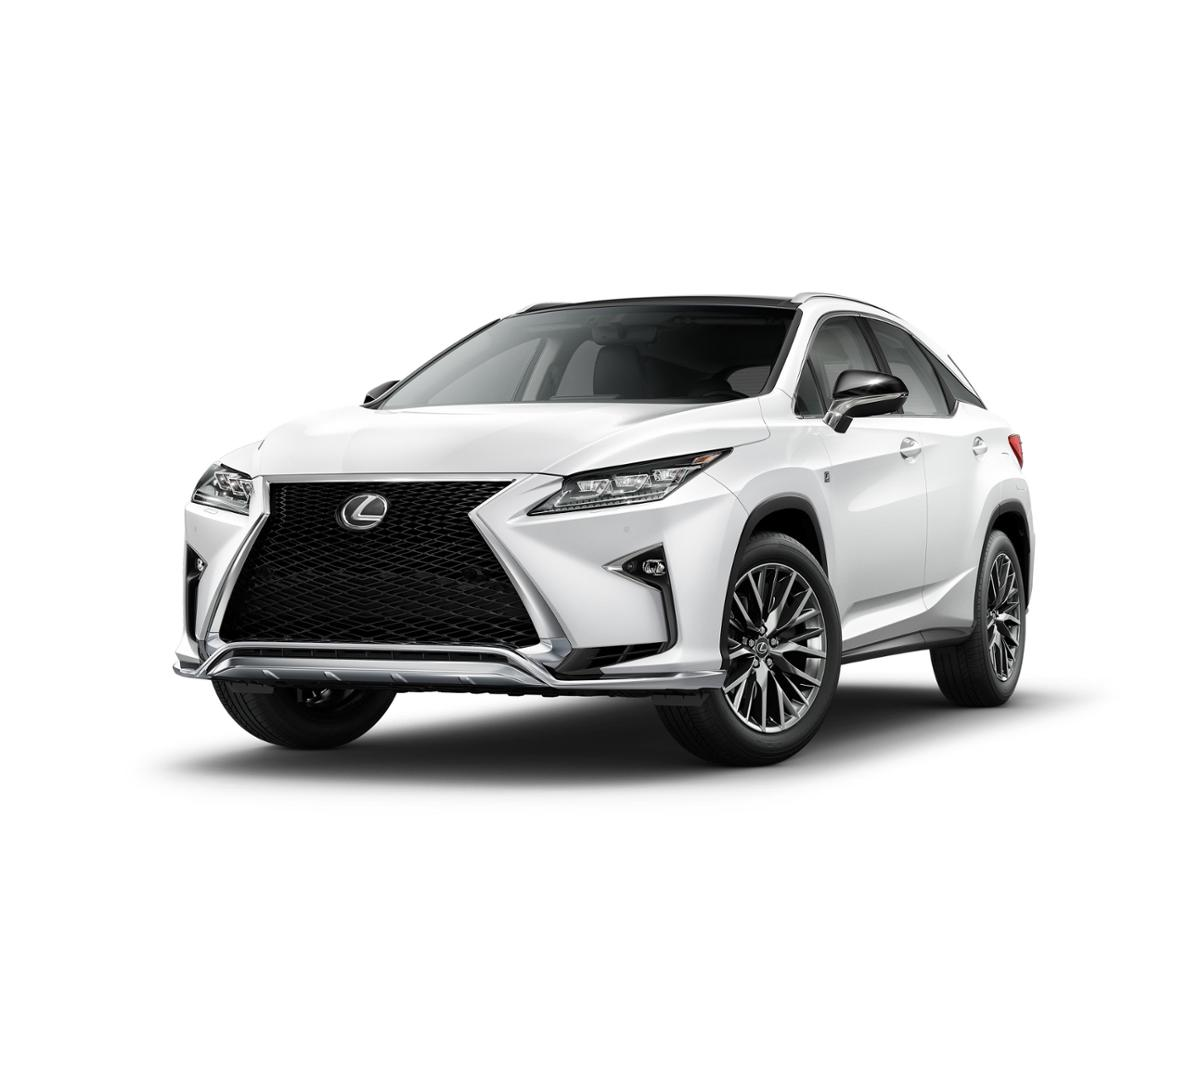 2018 lexus rx 350 portland or kuni lexus of portland jc139186. Black Bedroom Furniture Sets. Home Design Ideas